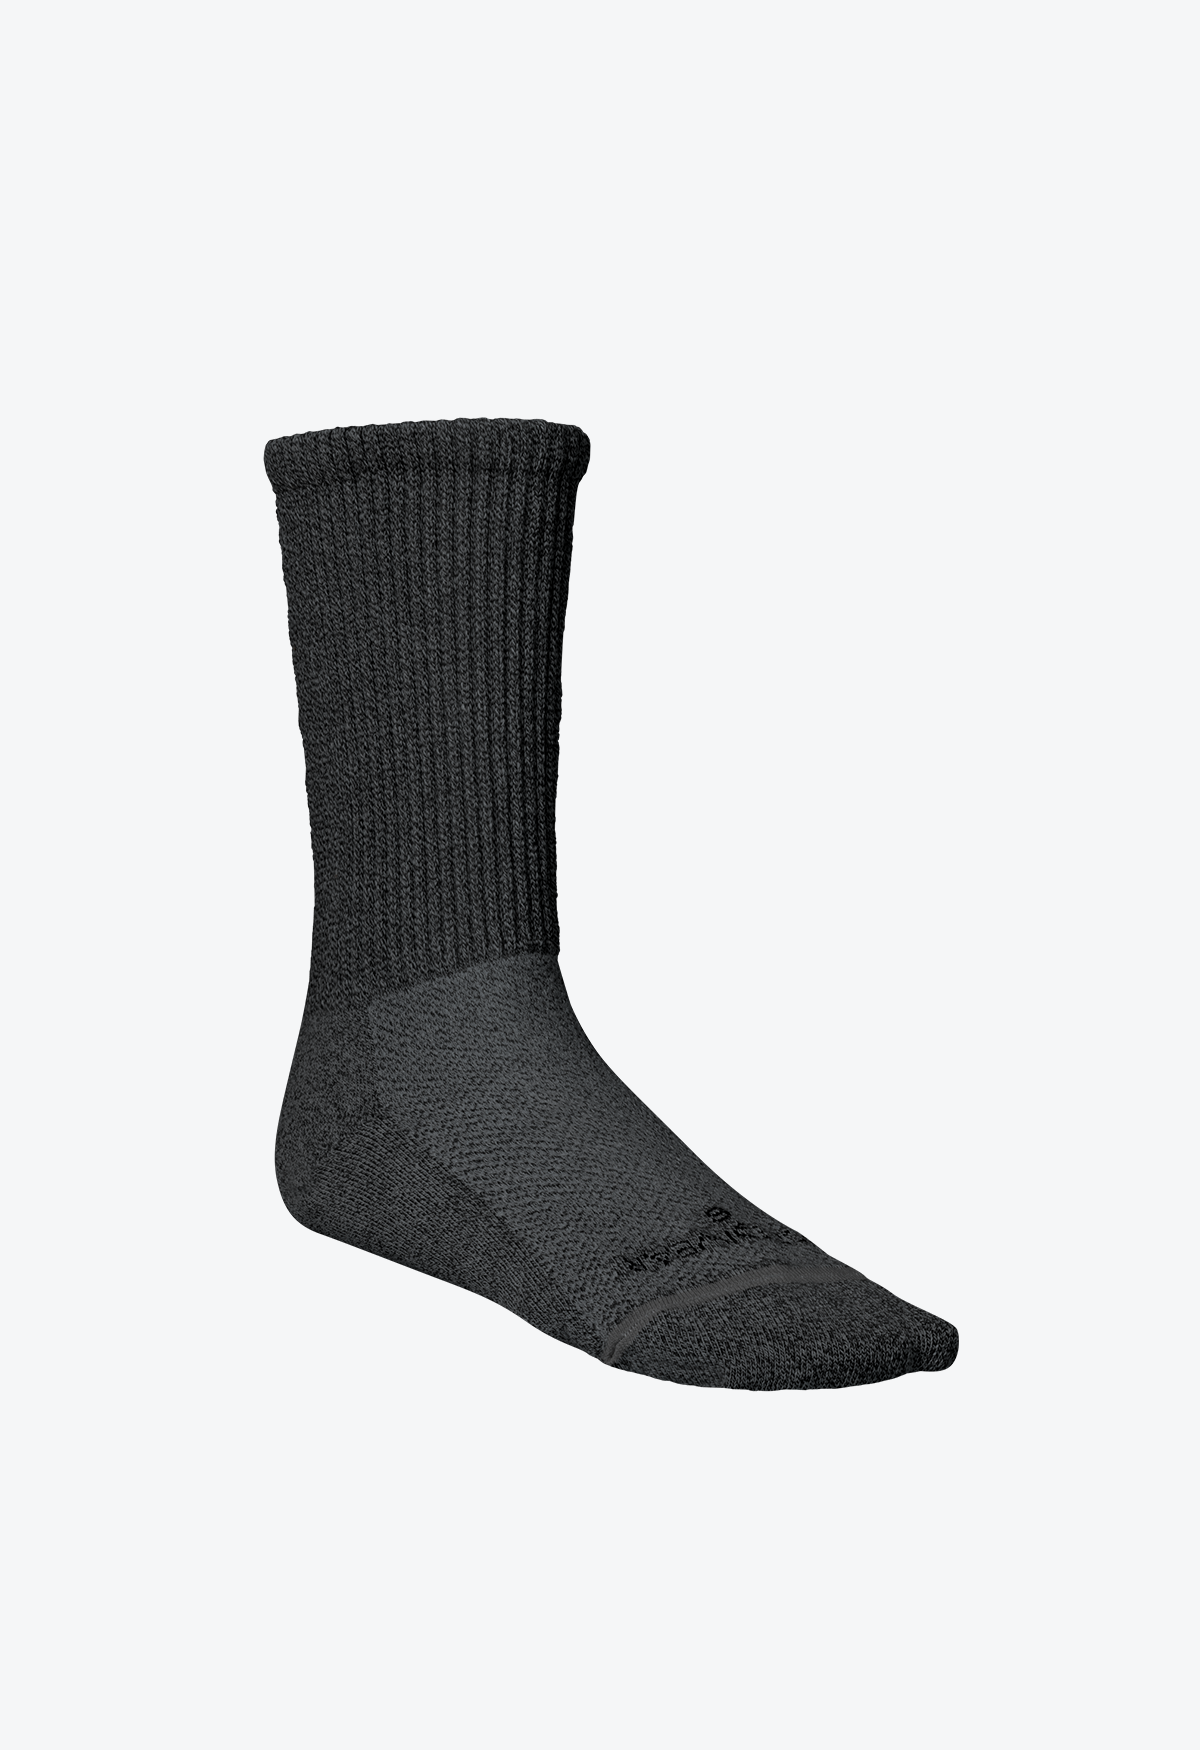 Circulation_Socks_Grey_Ankle_Crew_Left